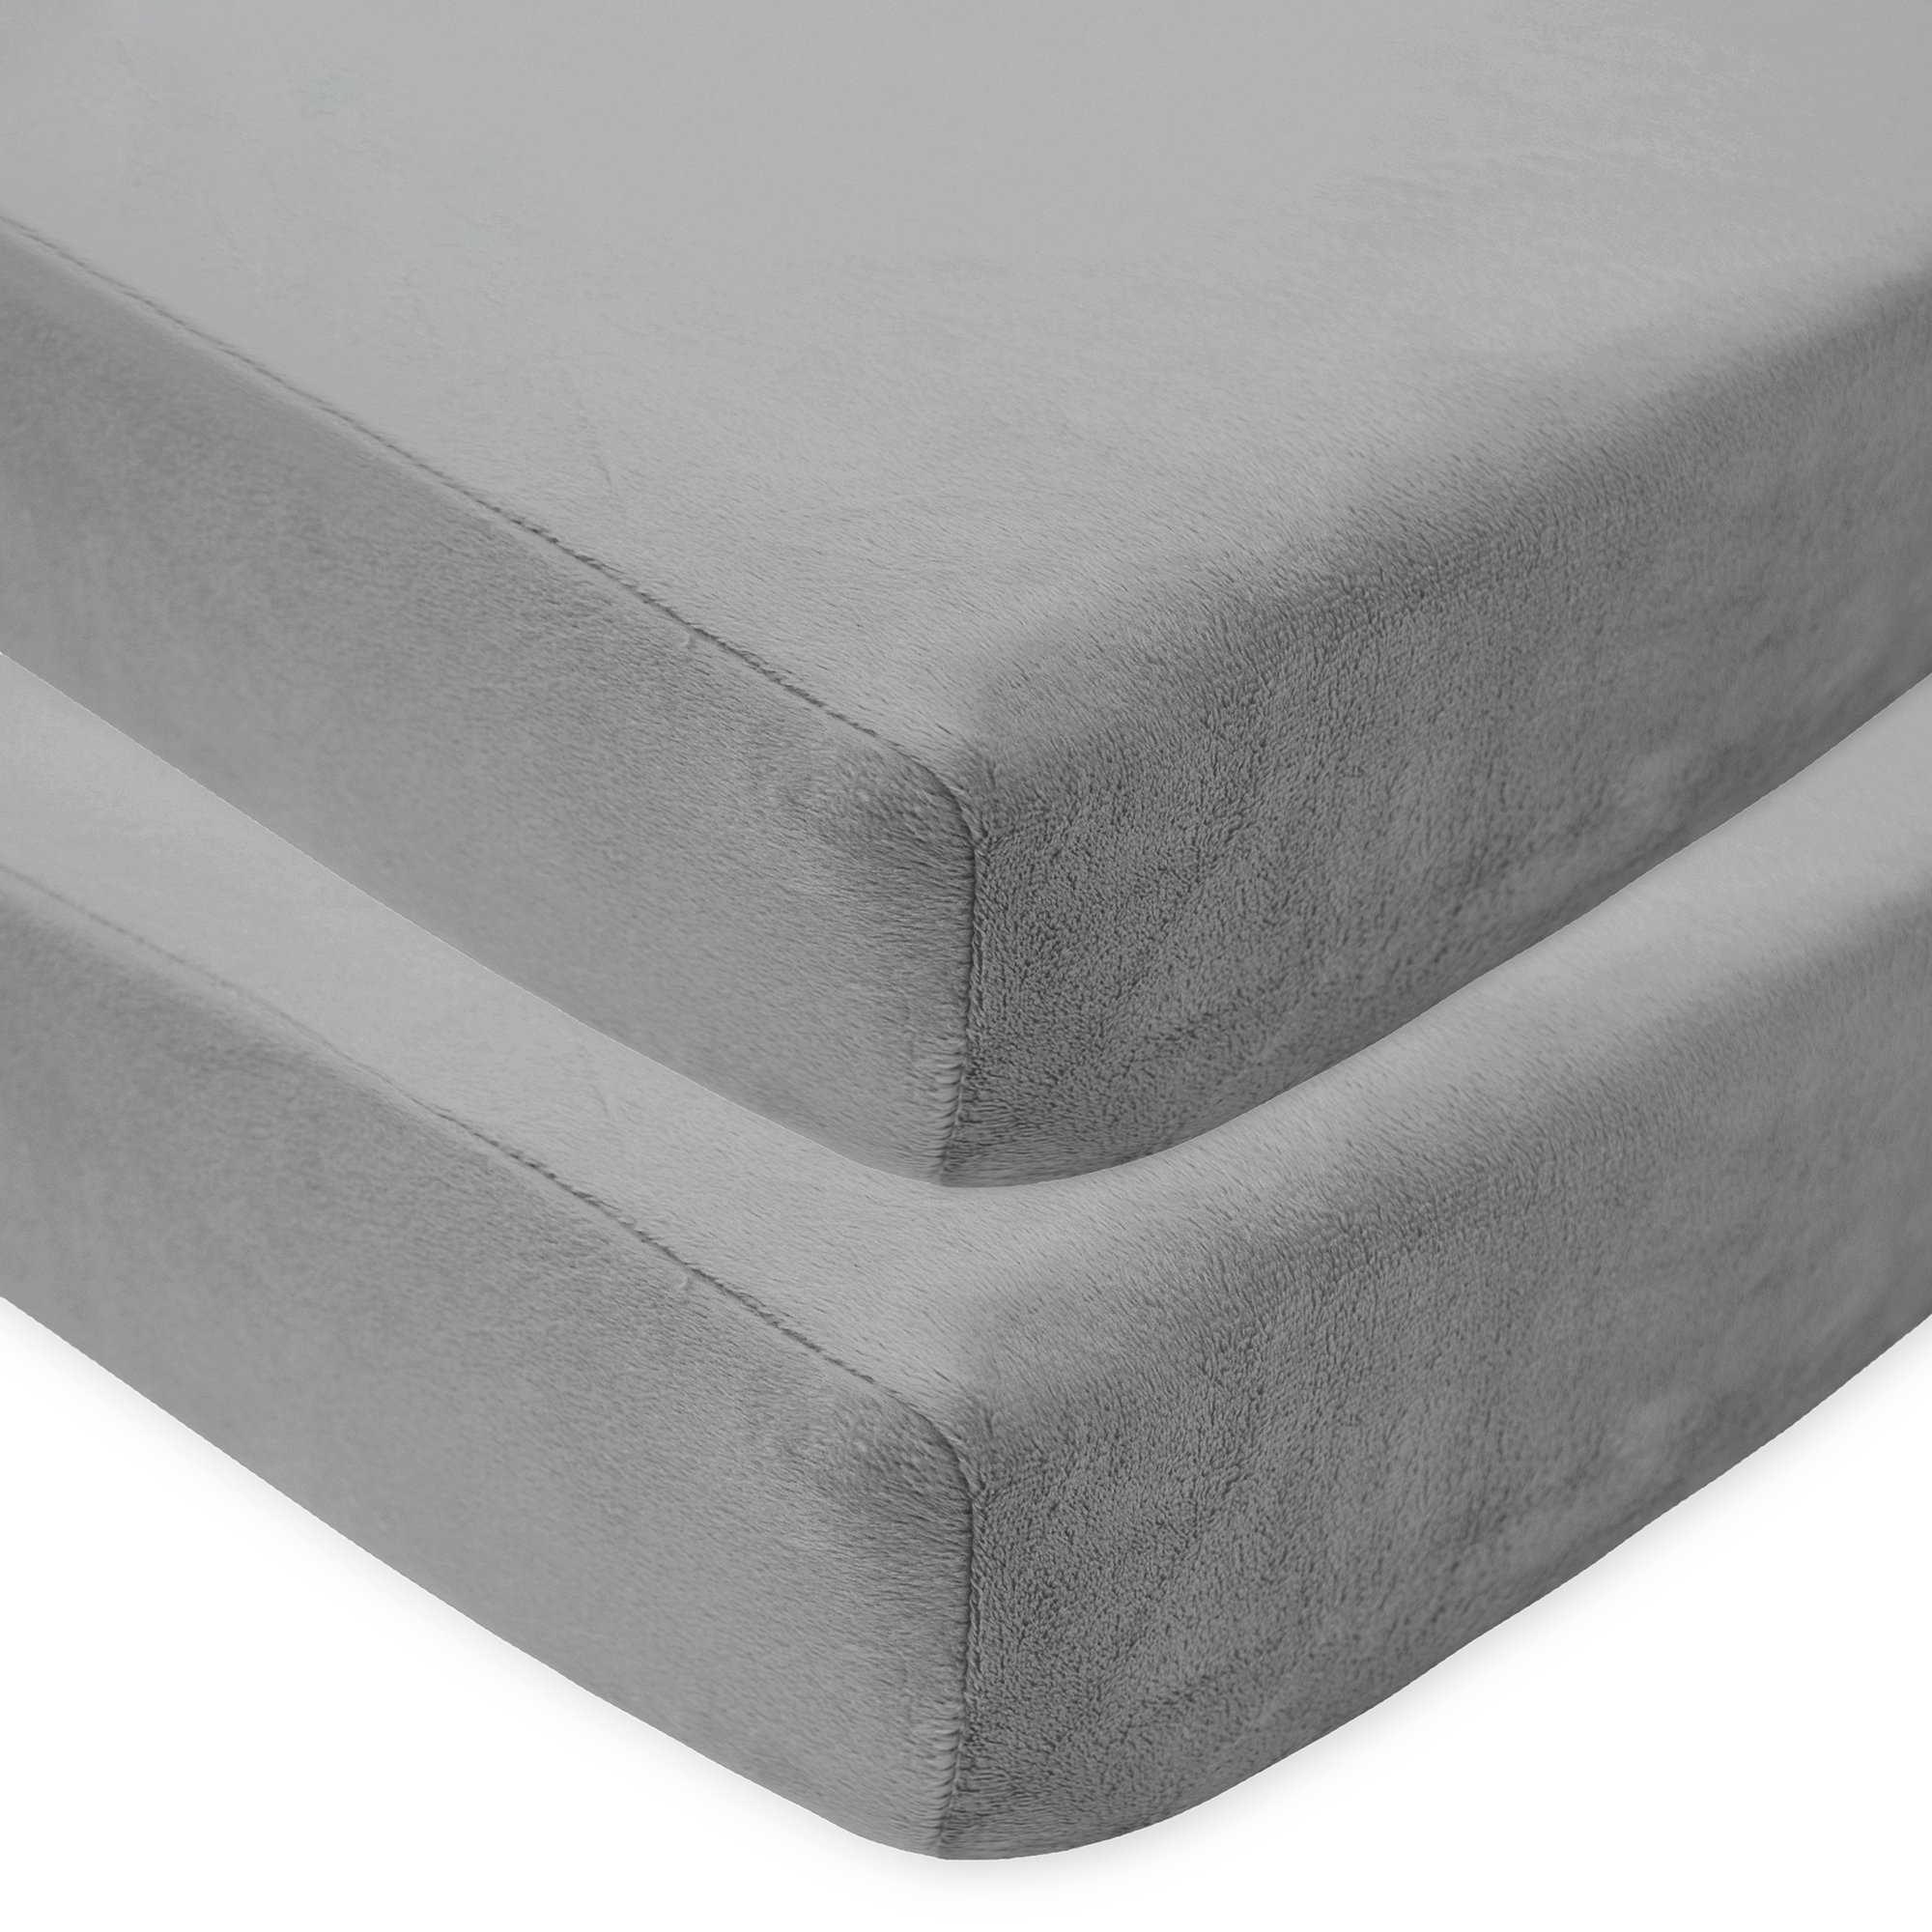 American Baby Company 2 Pack Heavenly Soft Chenille Fitted Crib Sheet for Standard Crib and Toddler Mattresses, Grey, 28'' x 52'', for Boys and Girls by American Baby Company